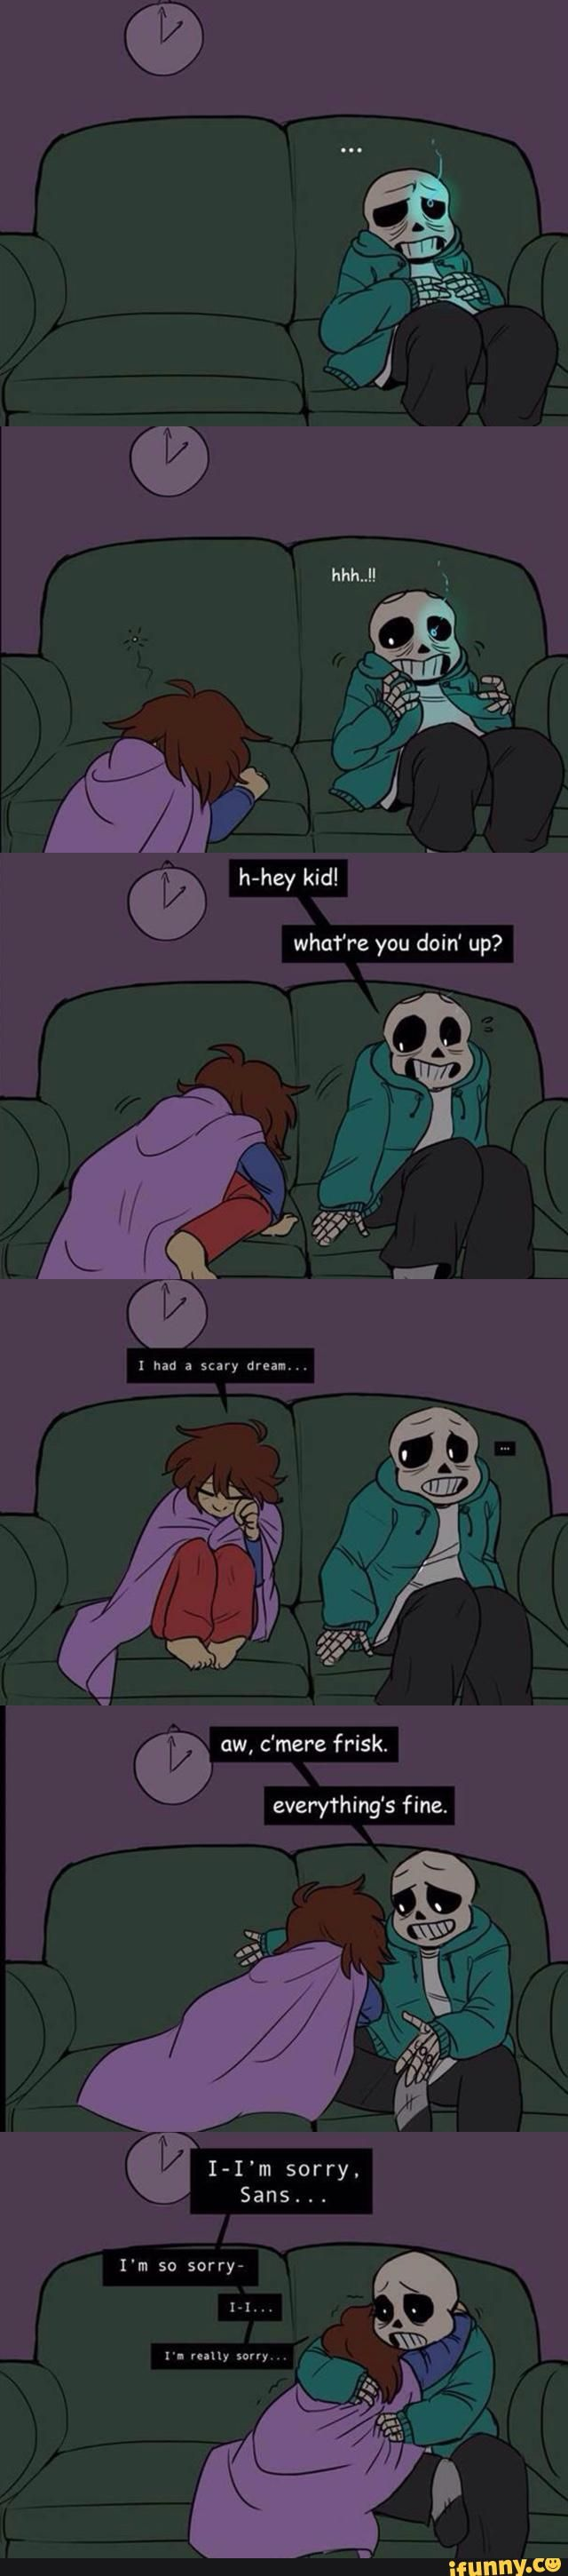 undertale, sans, frisk. In which the Genocide run is just a bad dream. Frisk must've just killed Sans